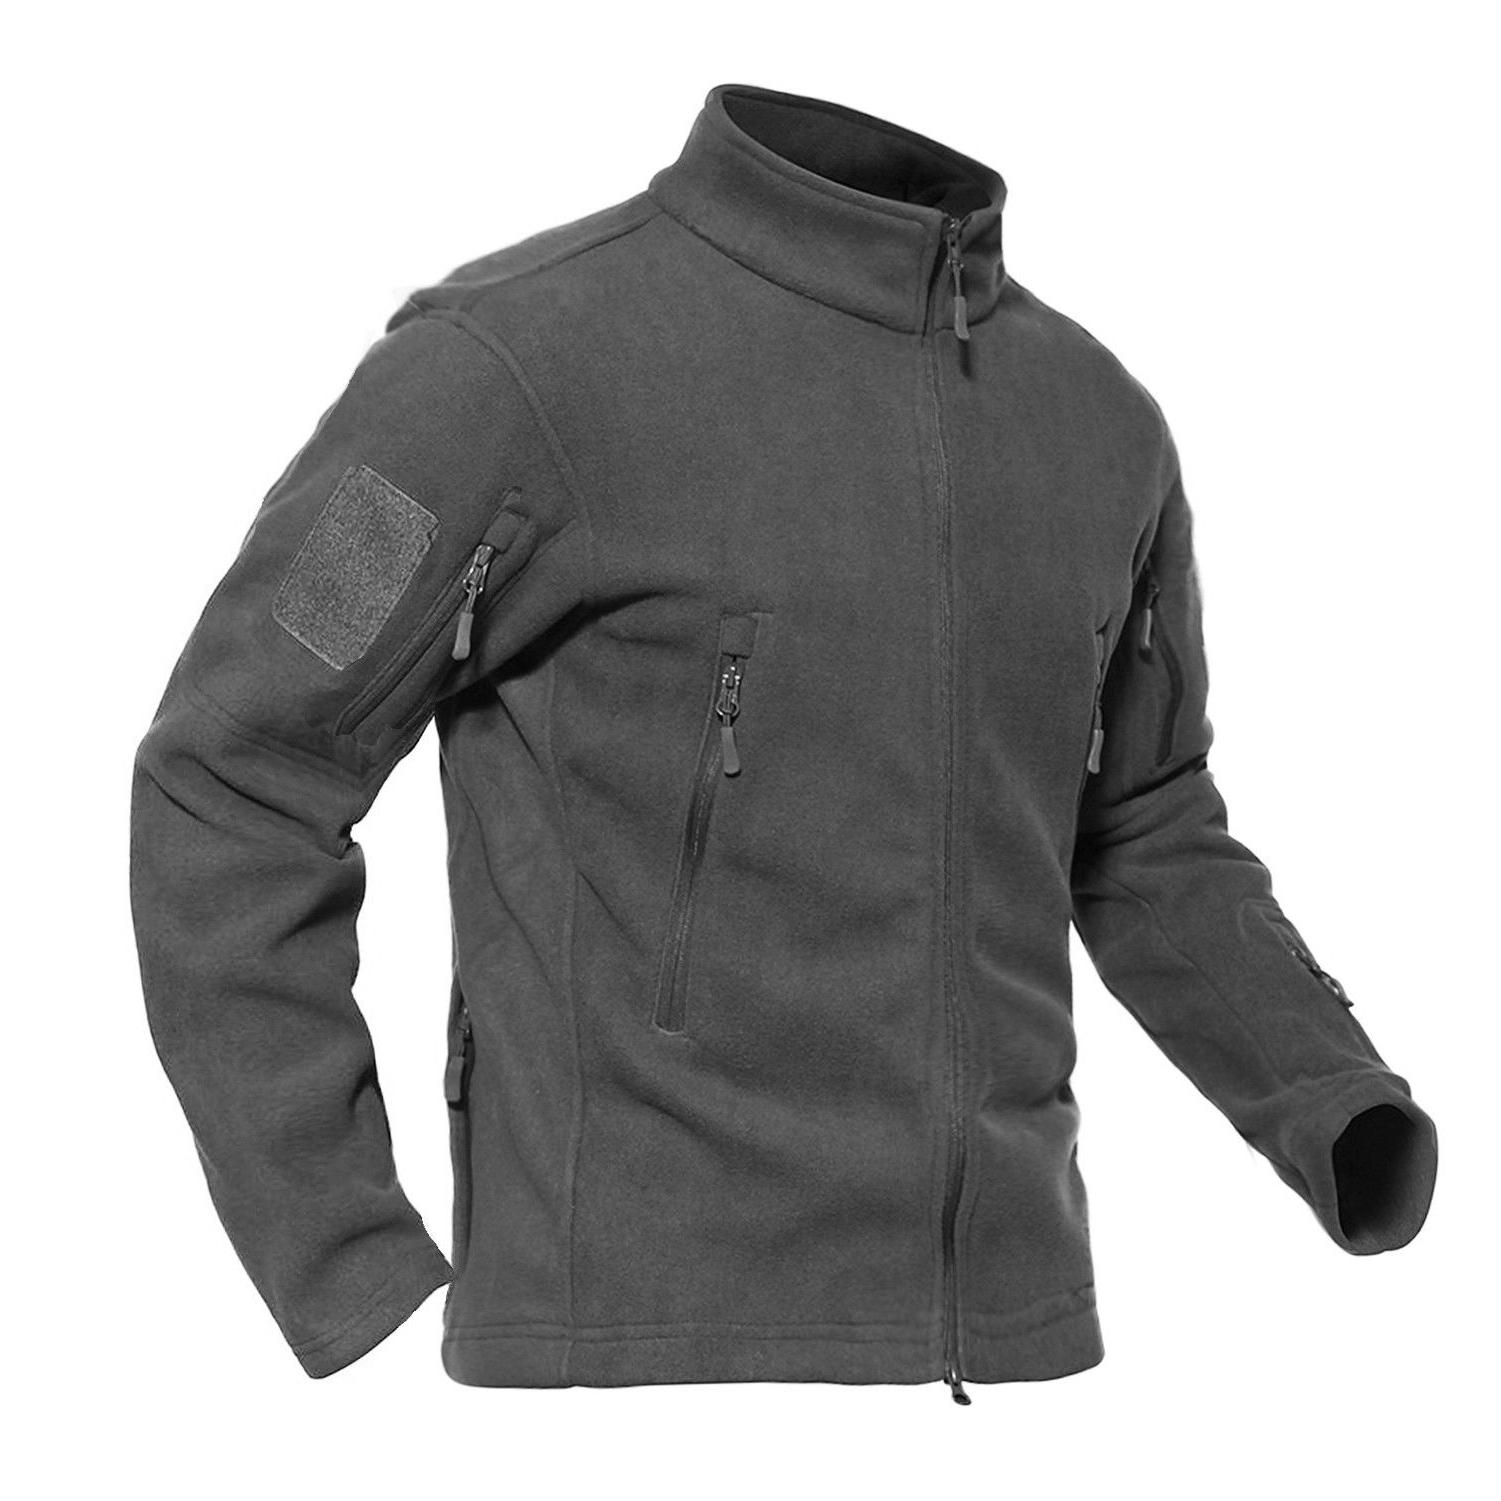 Mens Military Outdoor